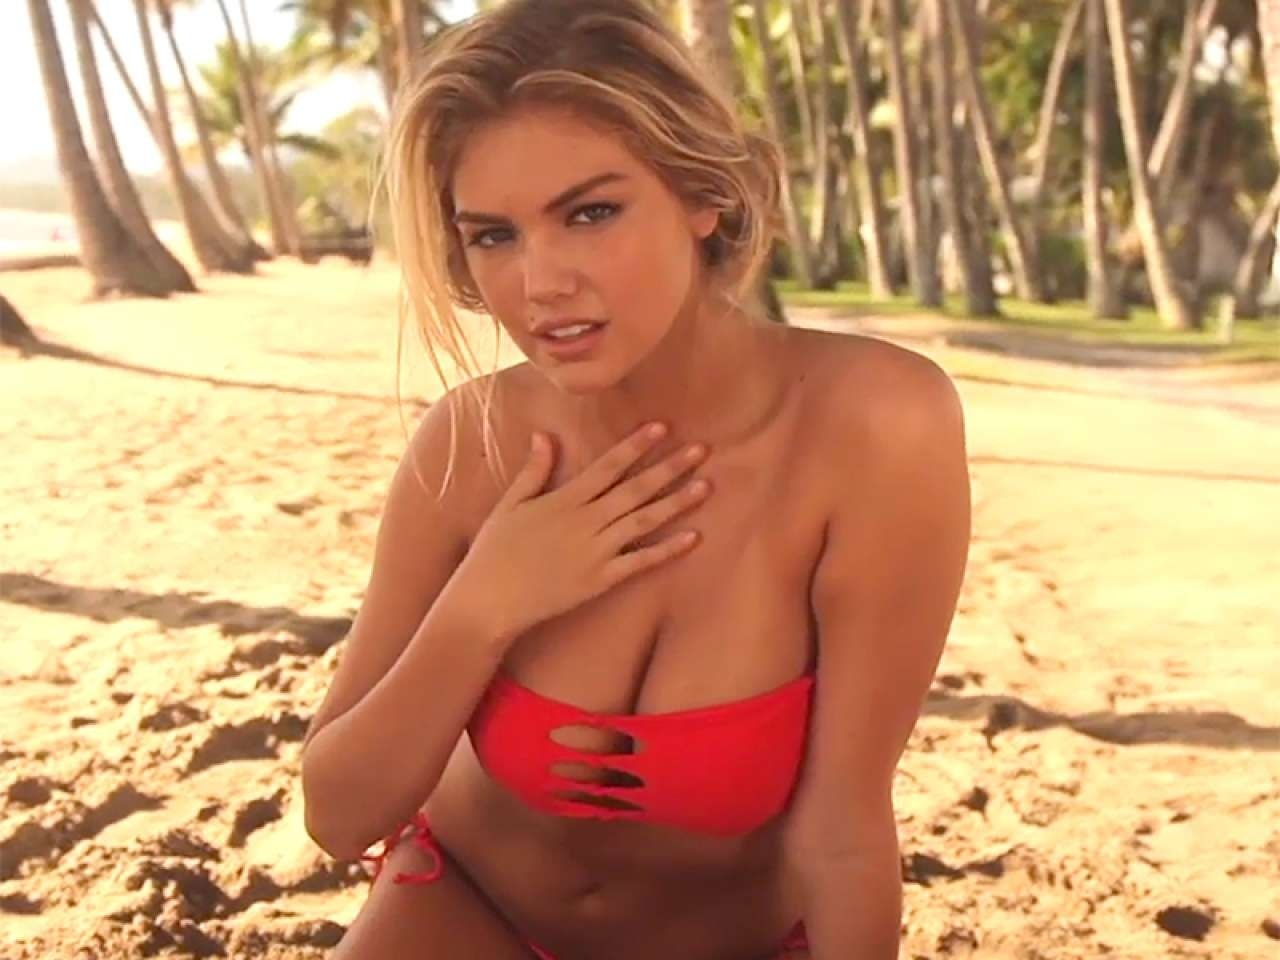 Kate Upton Sport Illustrated Photoshoot Outtakes Bikini